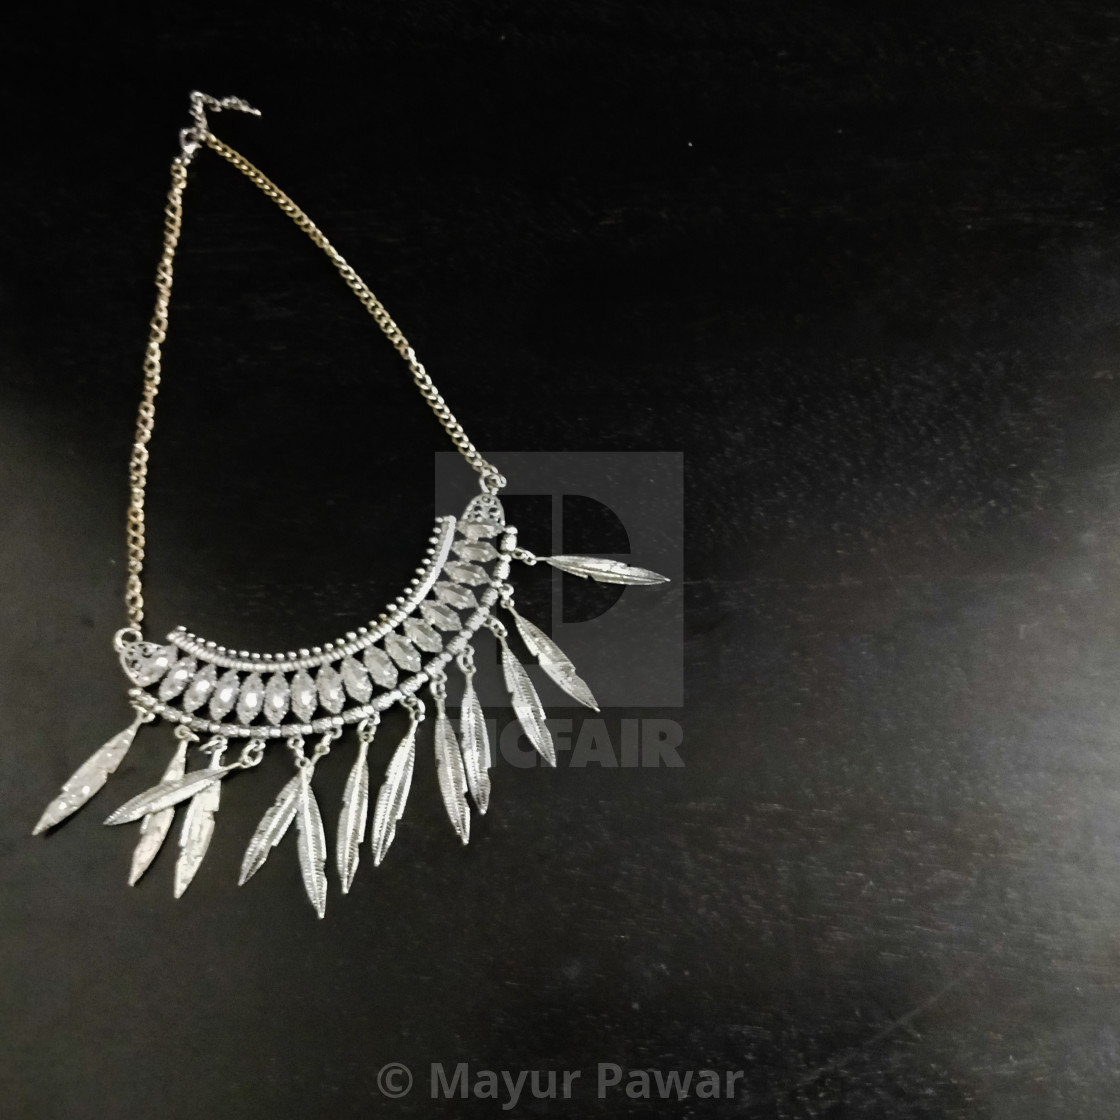 oxide silver necklace for fashion brand - License, download